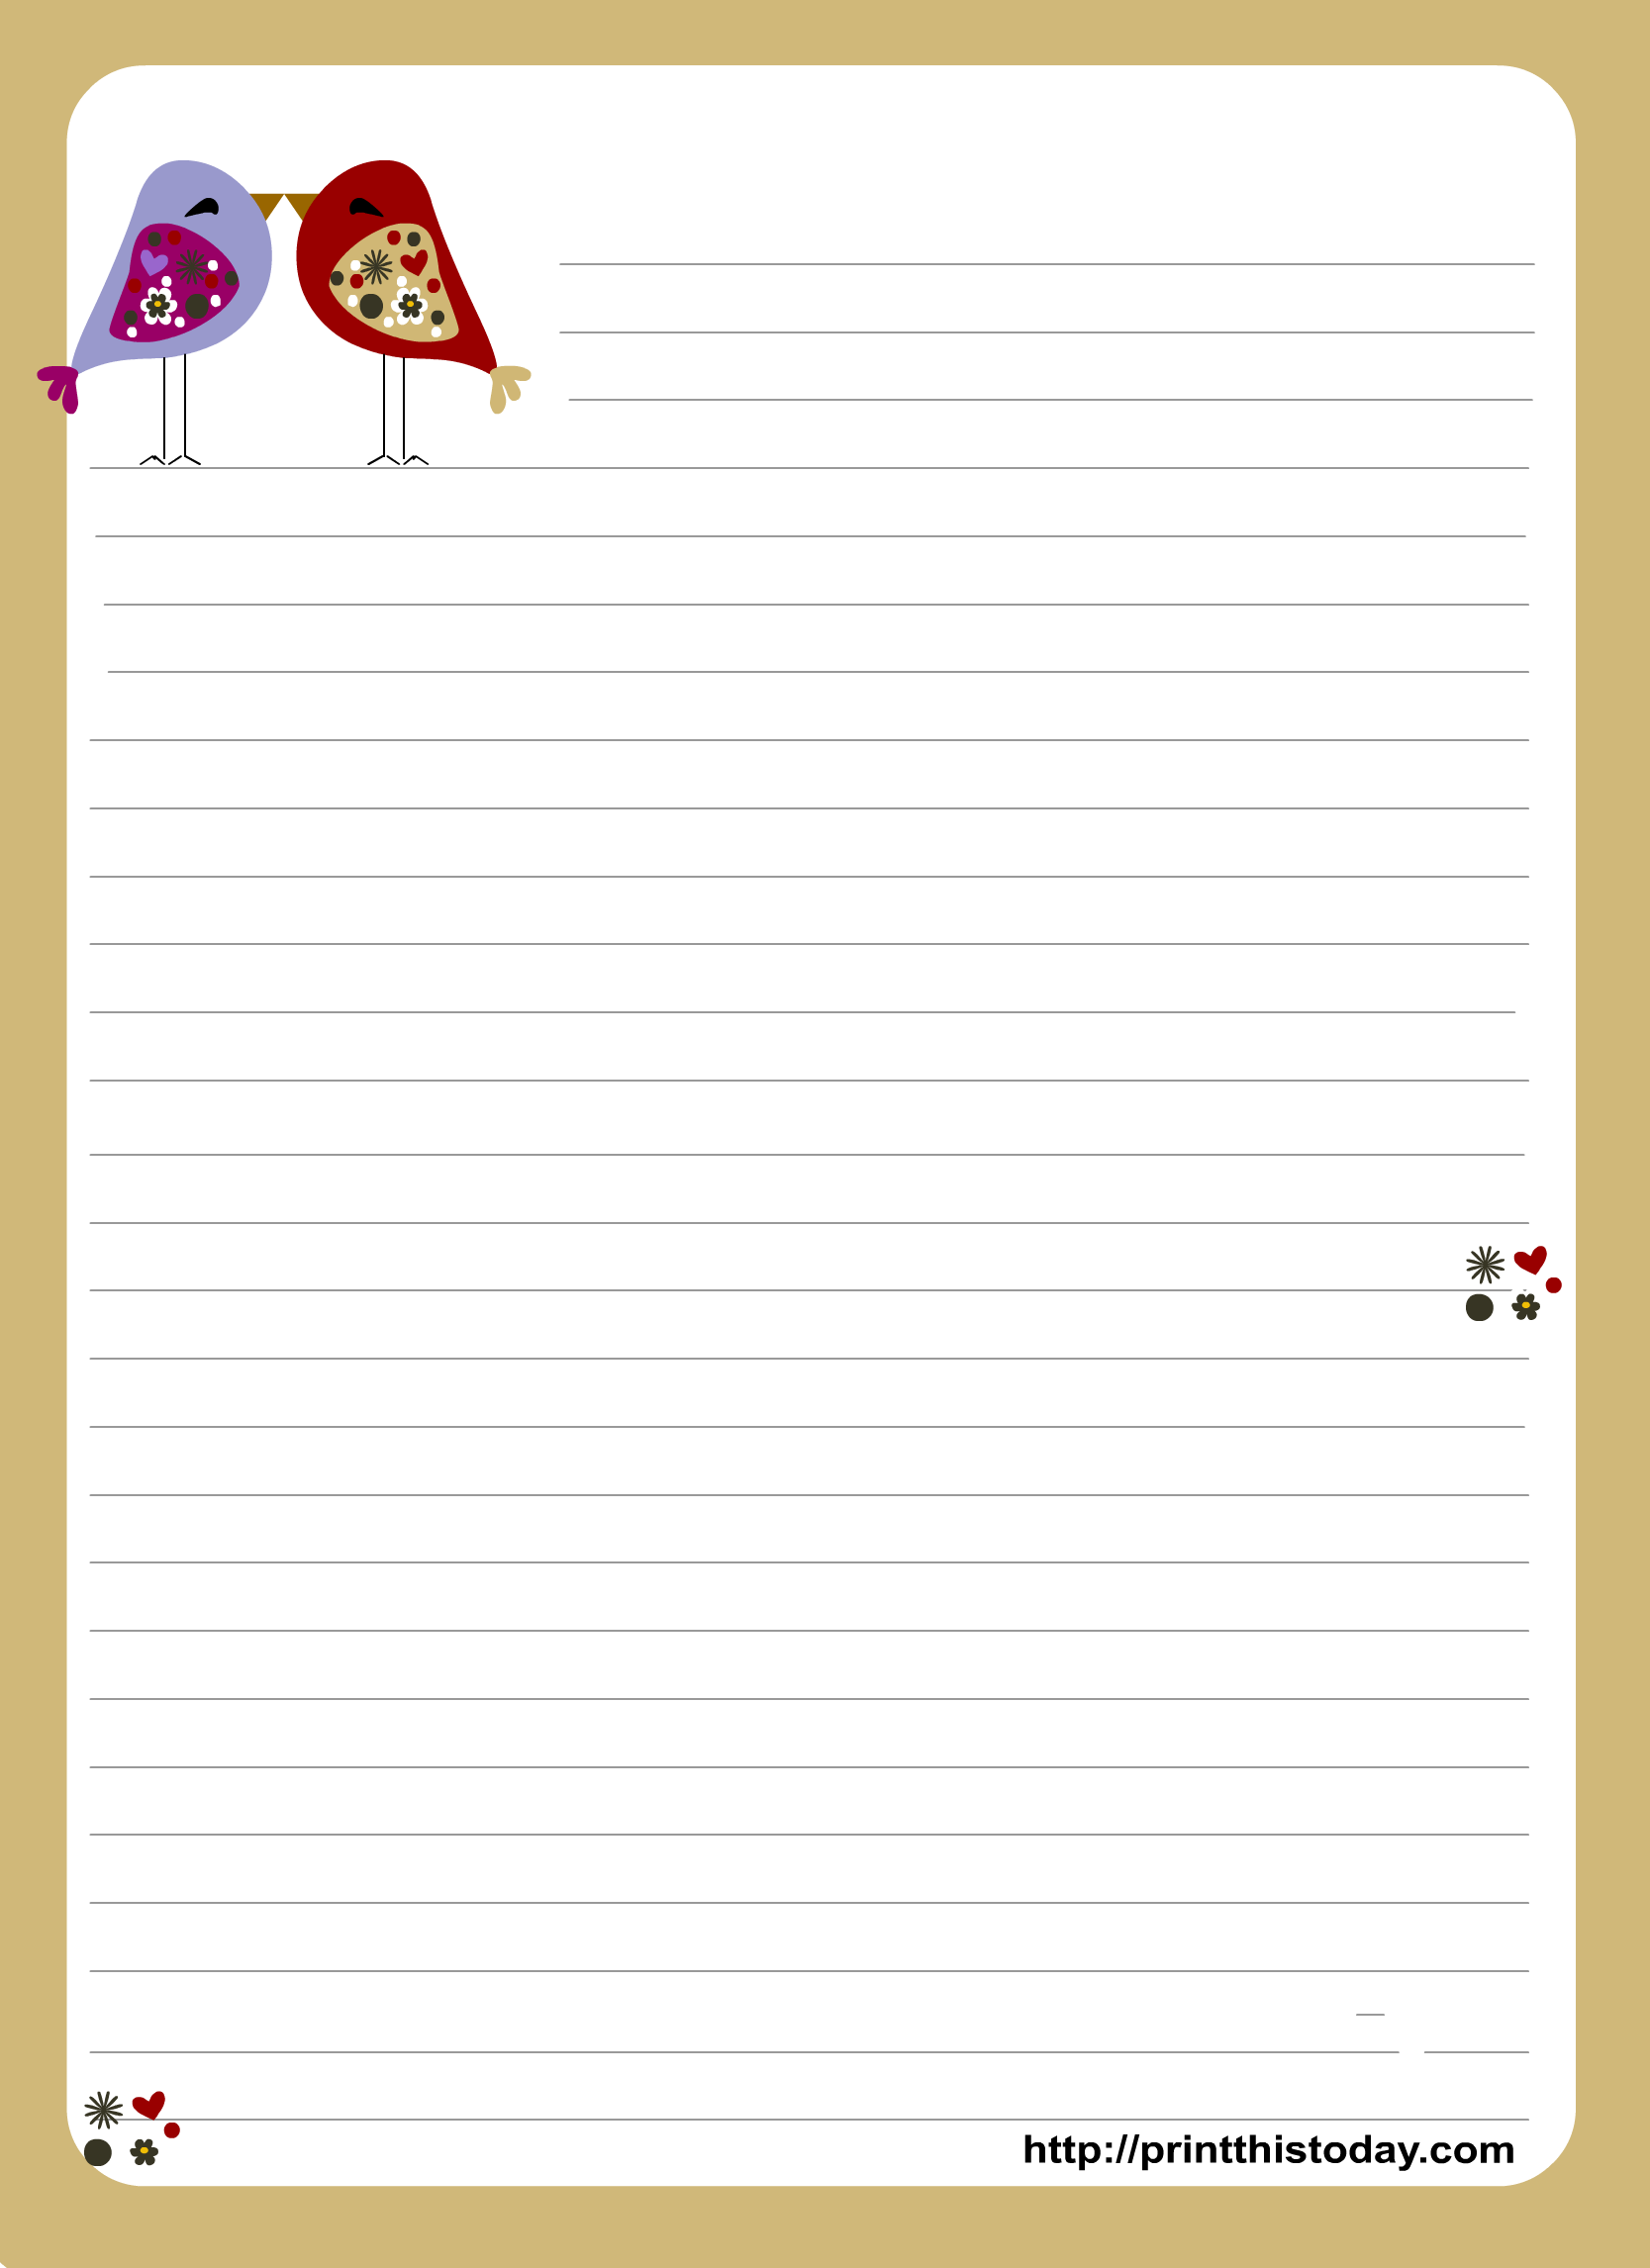 heart shaped writing template - this is an adorable love letter pad stationery design